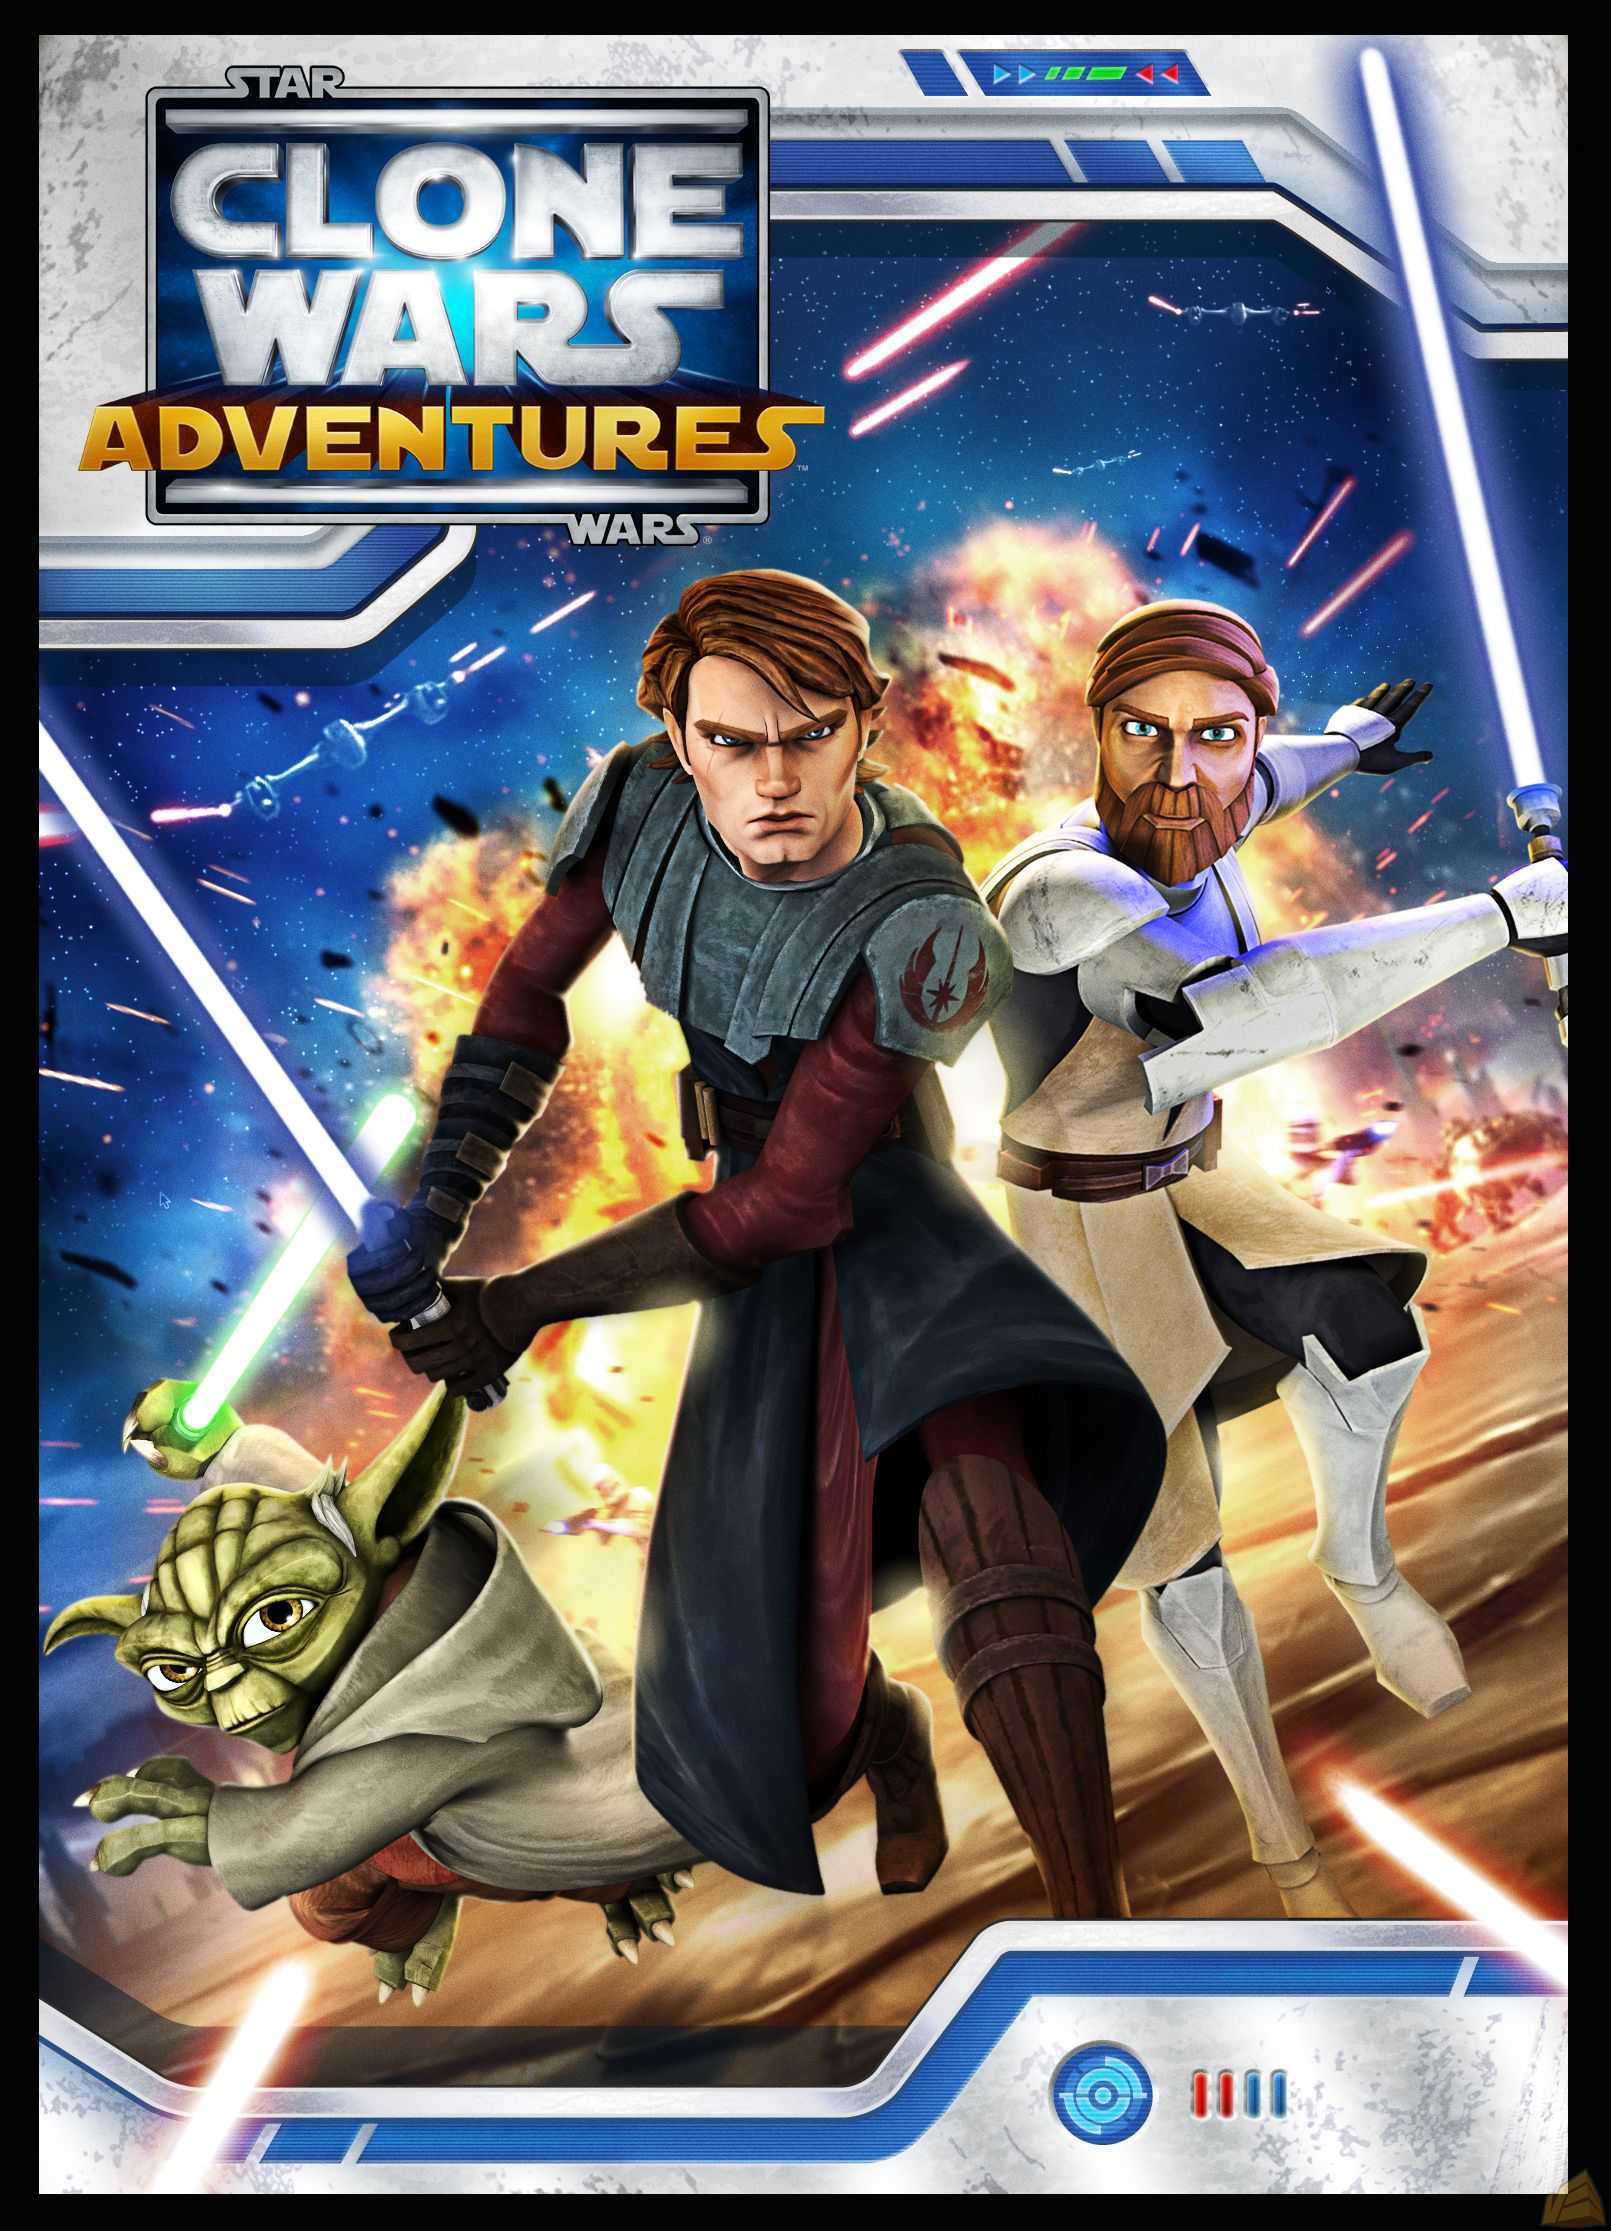 Star Wars Clone Wars Adventures Video Game Wookieepedia Fandom Powered By Wikia